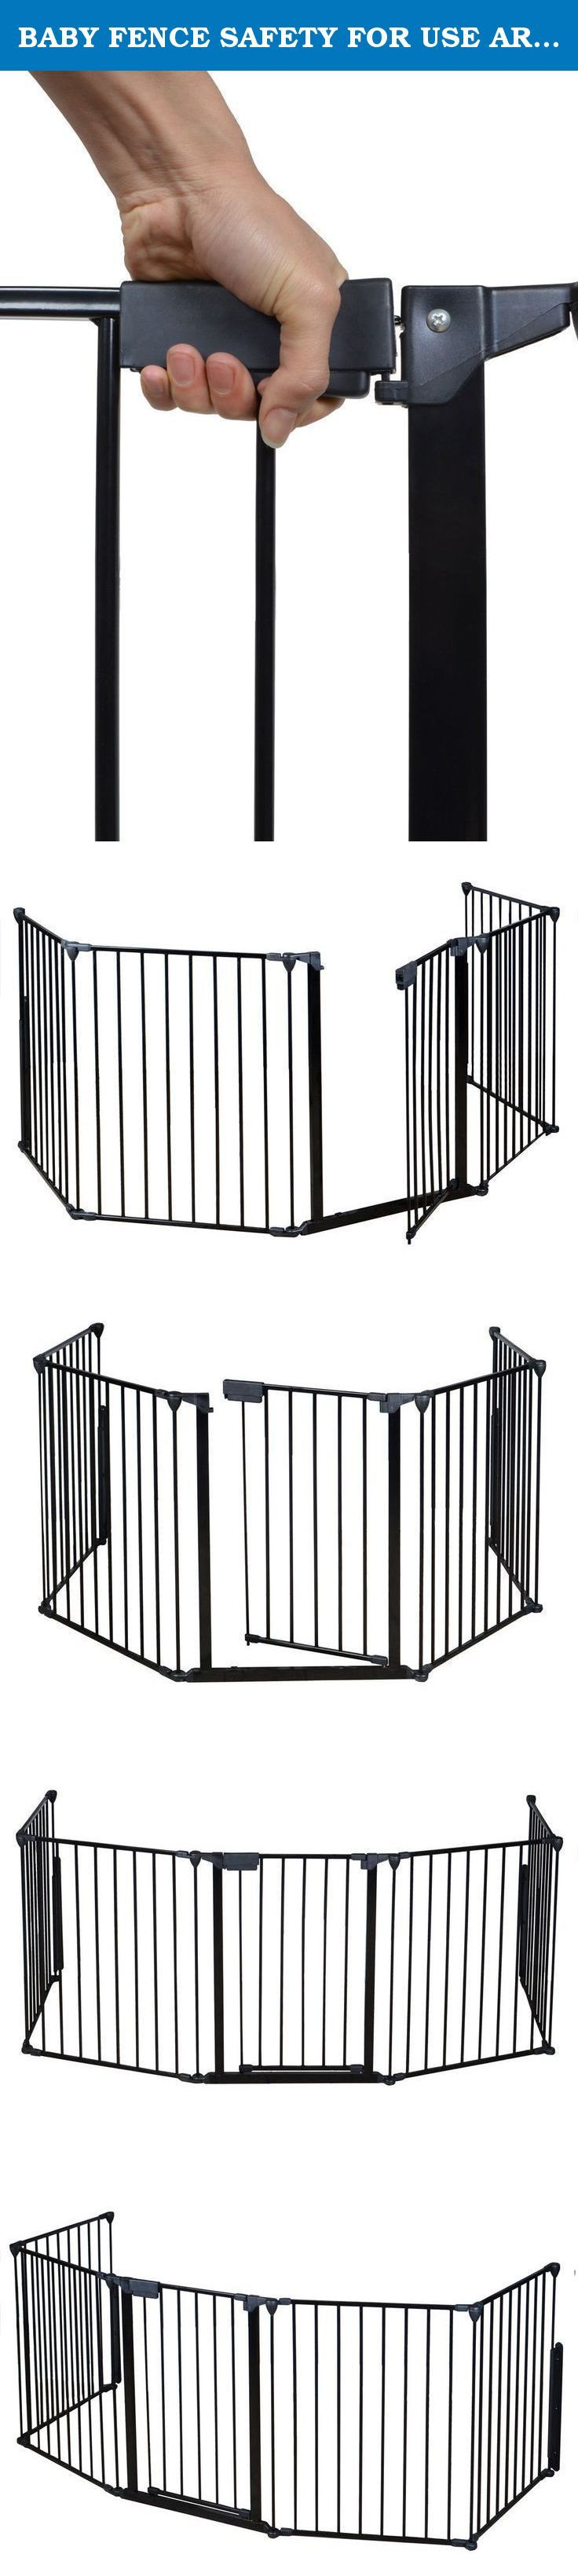 BABY FENCE SAFETY FOR USE AROUND FIREPLACES - FENCE FOR YOUR LOVELY PET. Constructed of heavy duty tubular steel. All joints easily rotate and lock for secure attachment. Quick release, adjustable wall mount hardware. Can be connected as a freestanding play area with optional extensions. Comes with a door with handle to make it easy for you to get through to your fireplace, or grill. Door section can be placed anywhere within the layout. Safety for use around fireplaces, grills, wood…